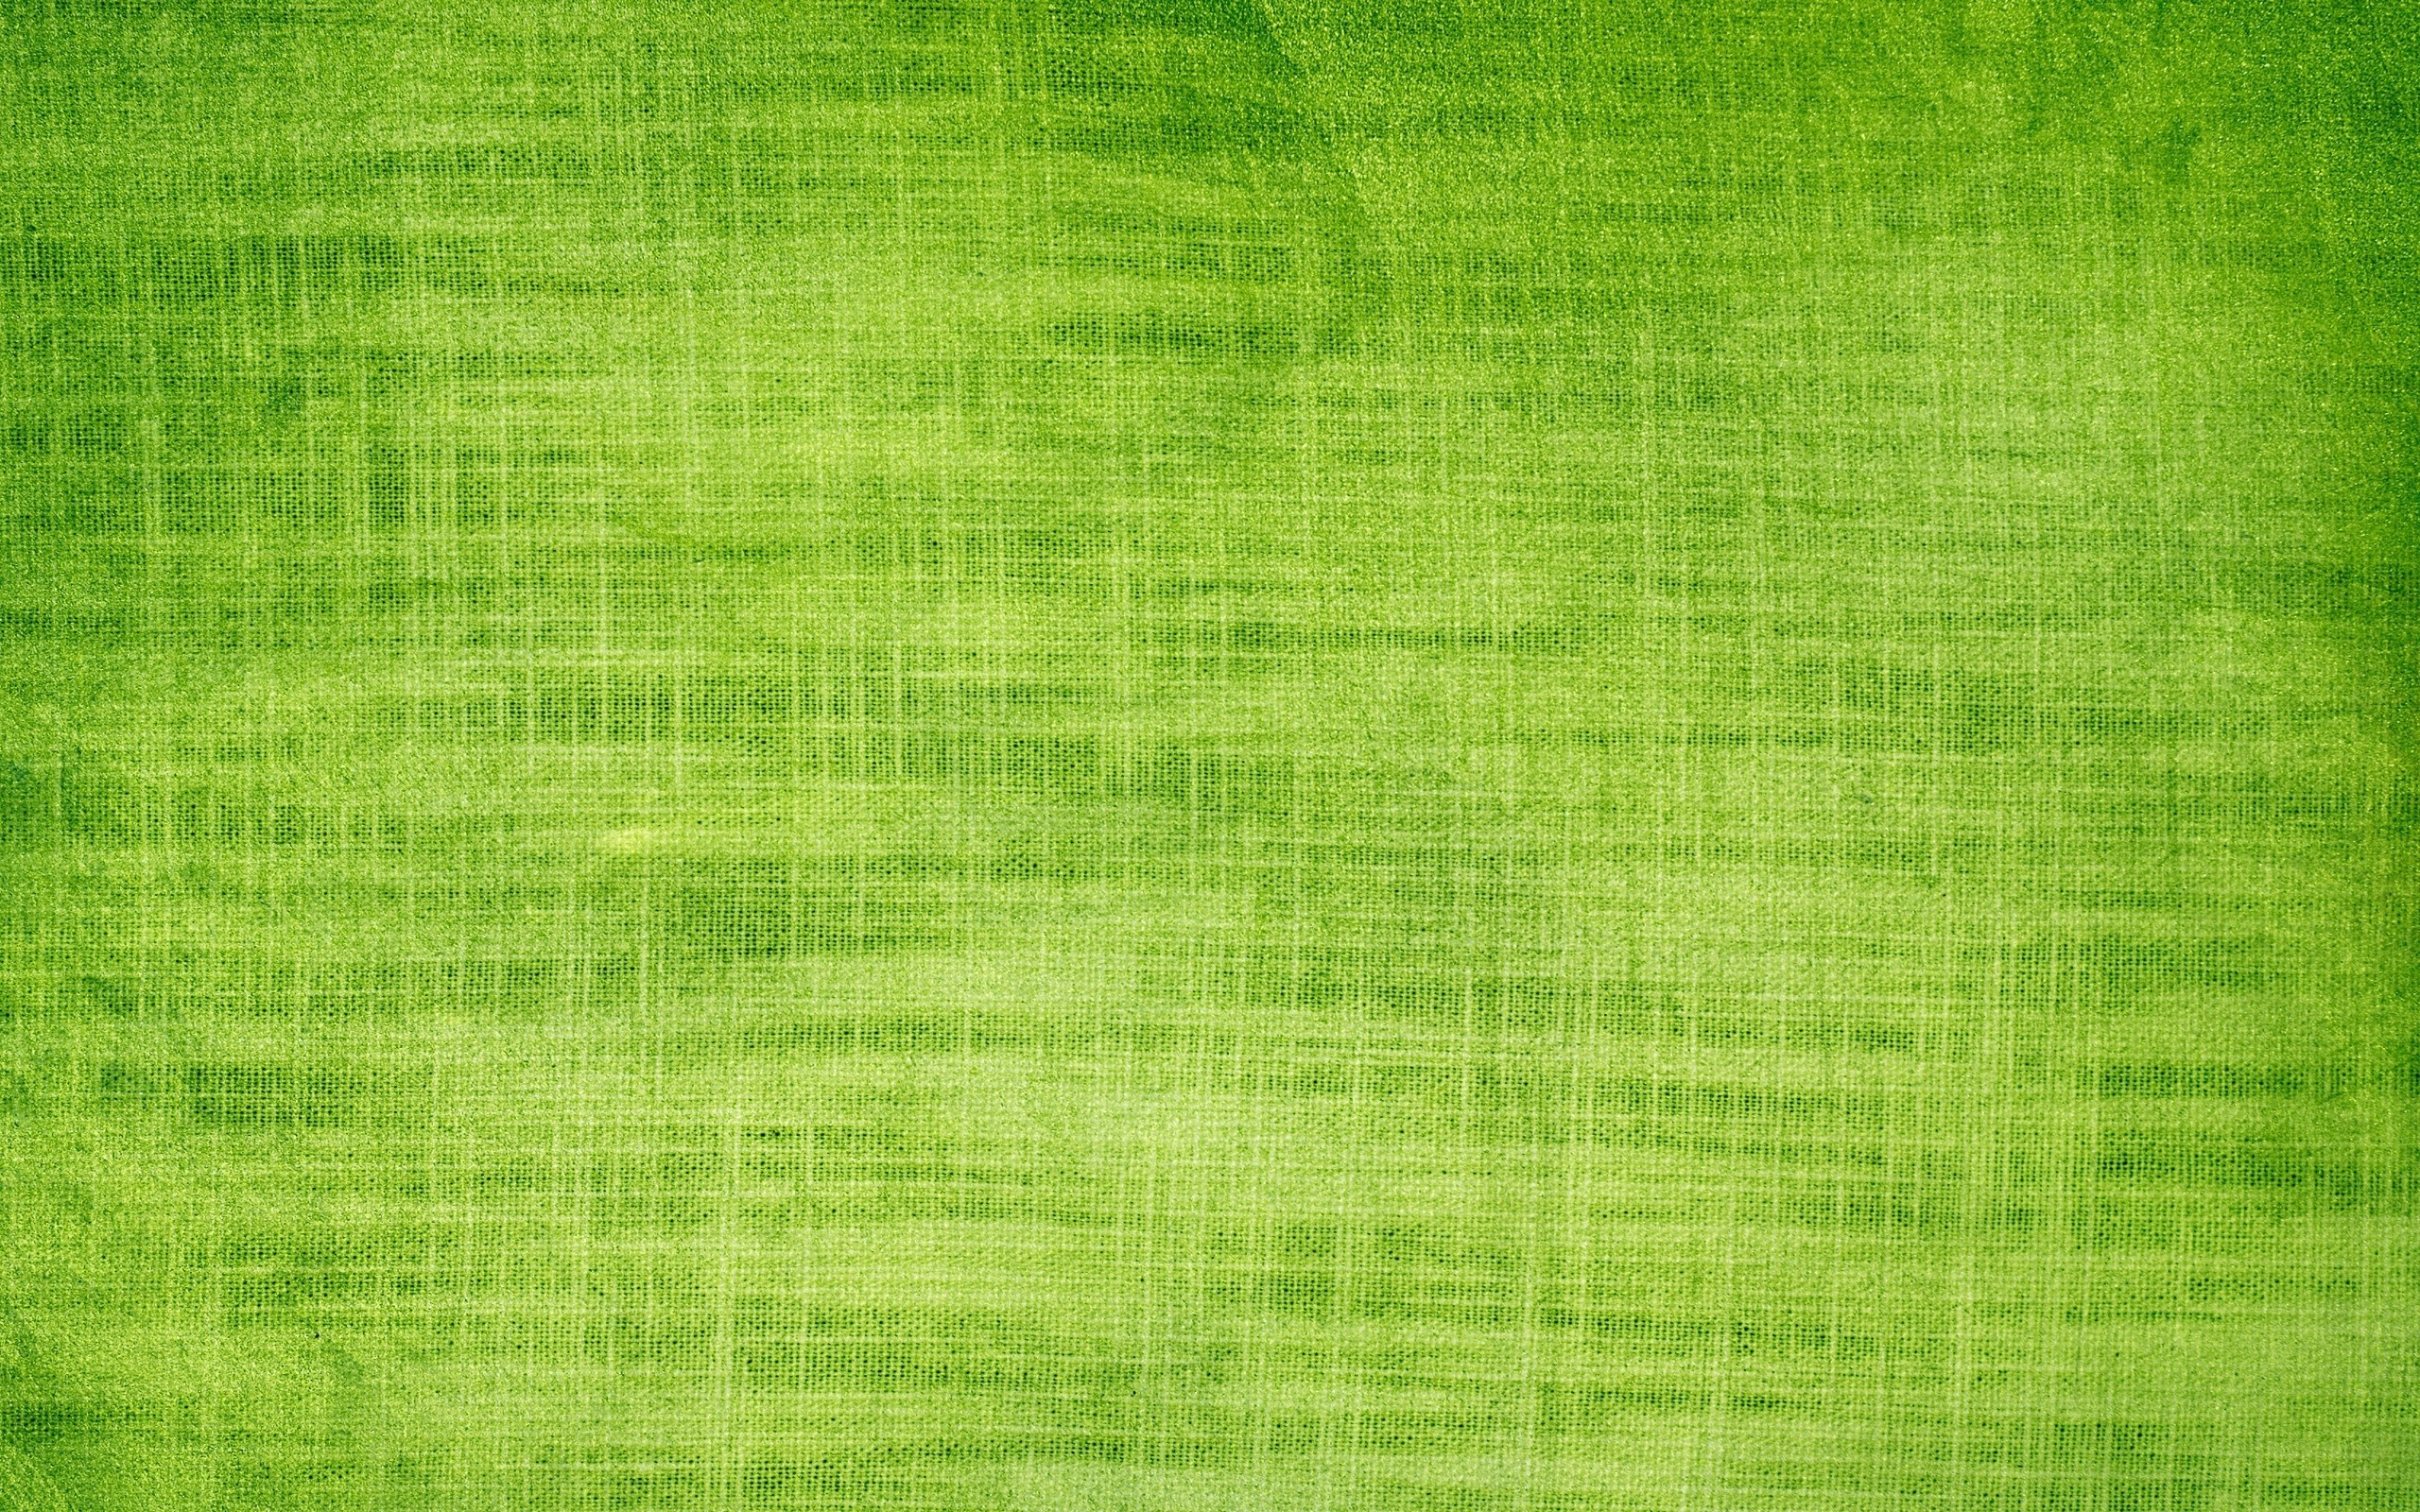 2560x1600 Free Newest Neon Green Wallpaper